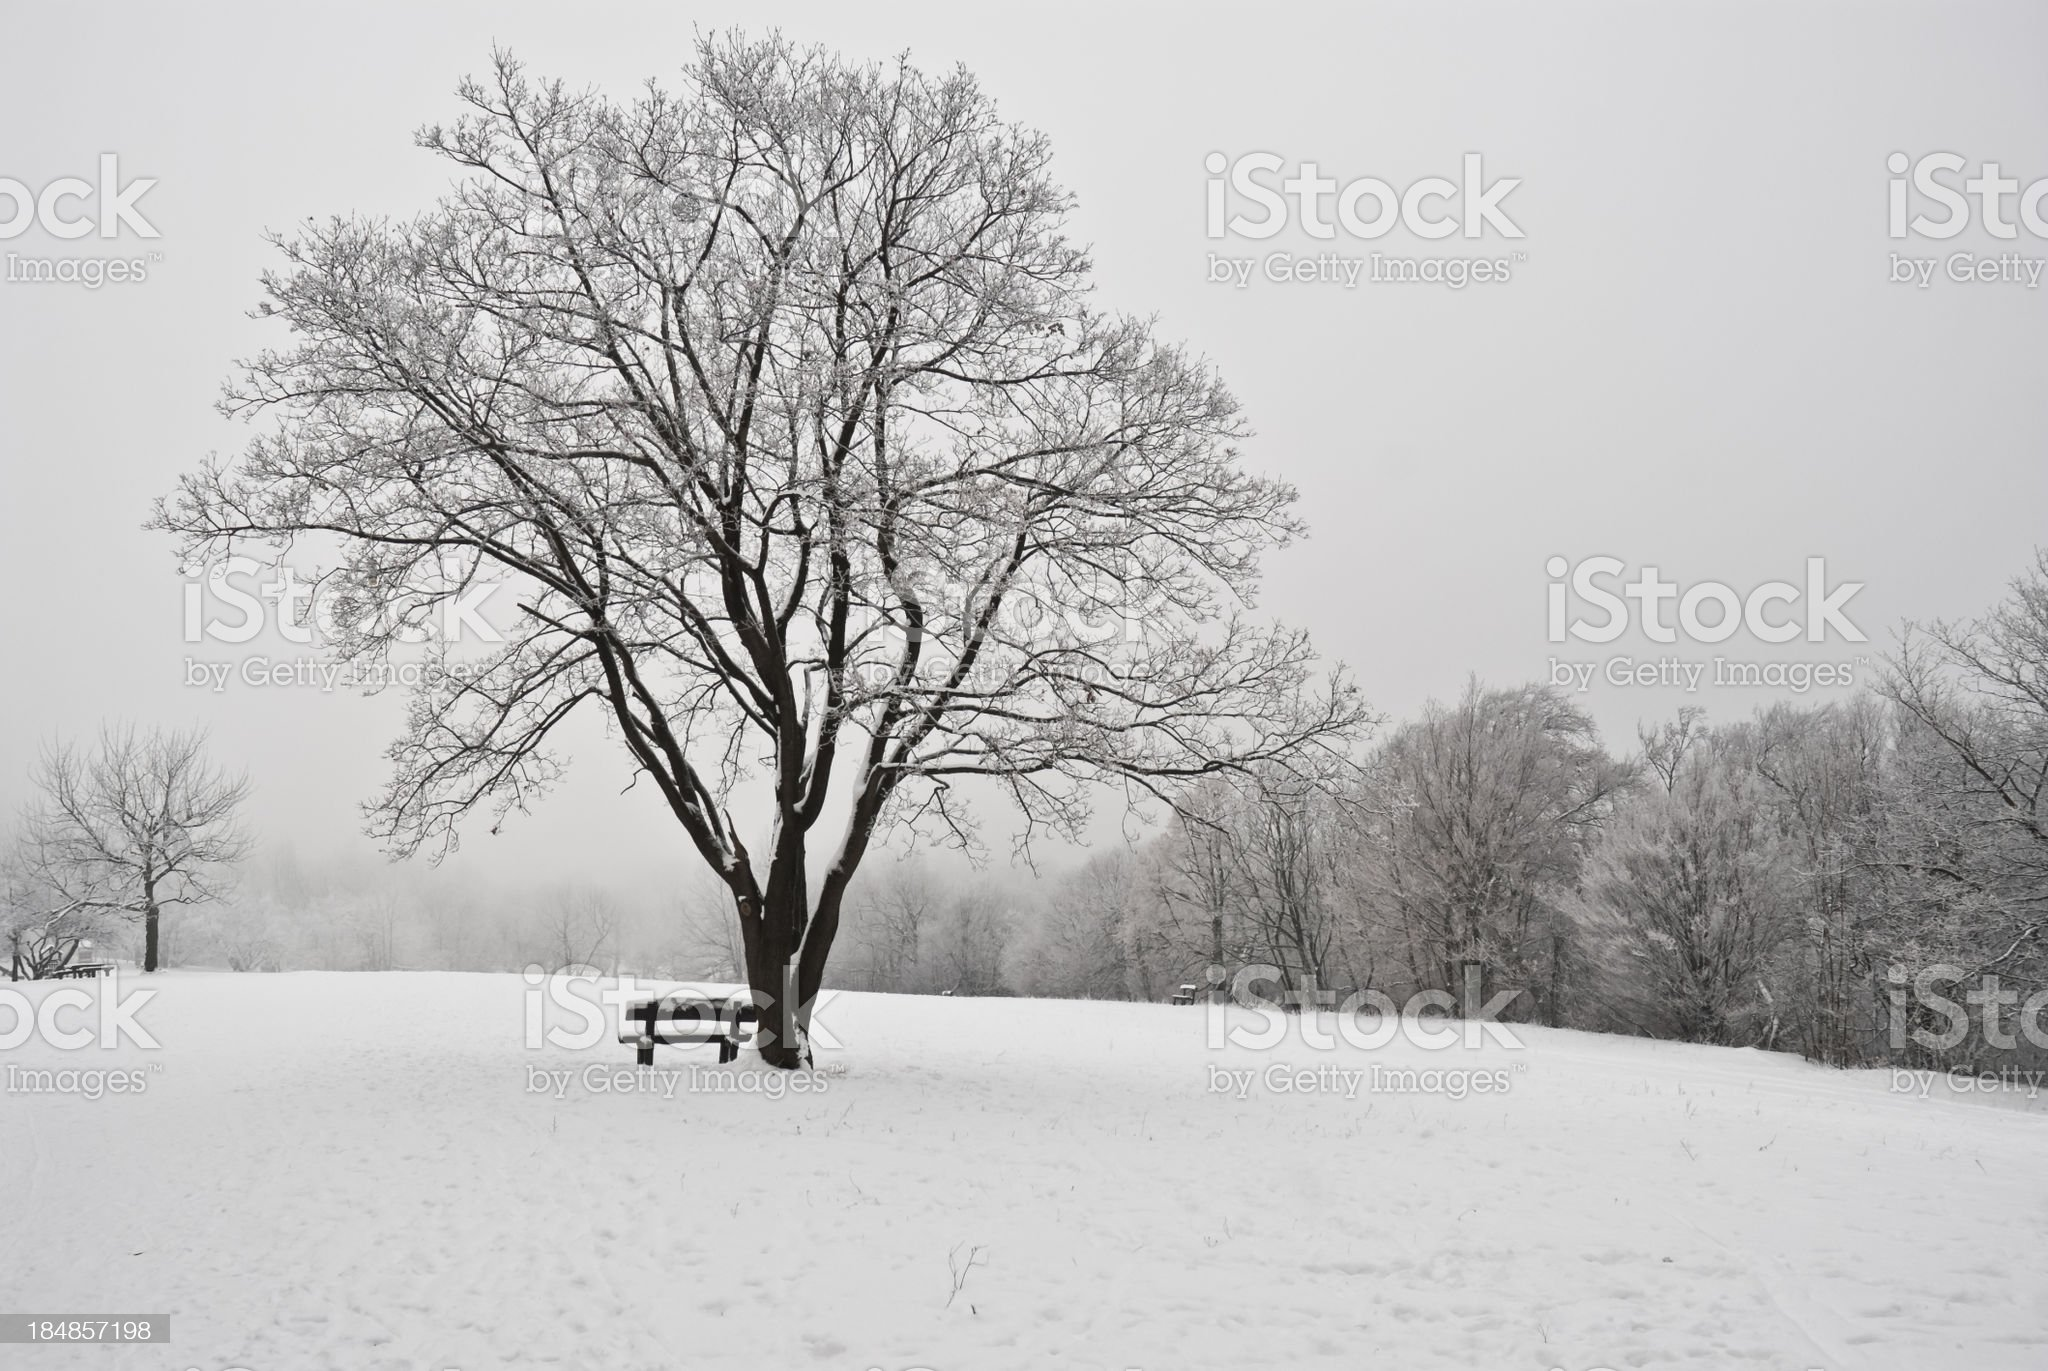 Tree and Bench in Winter royalty-free stock photo